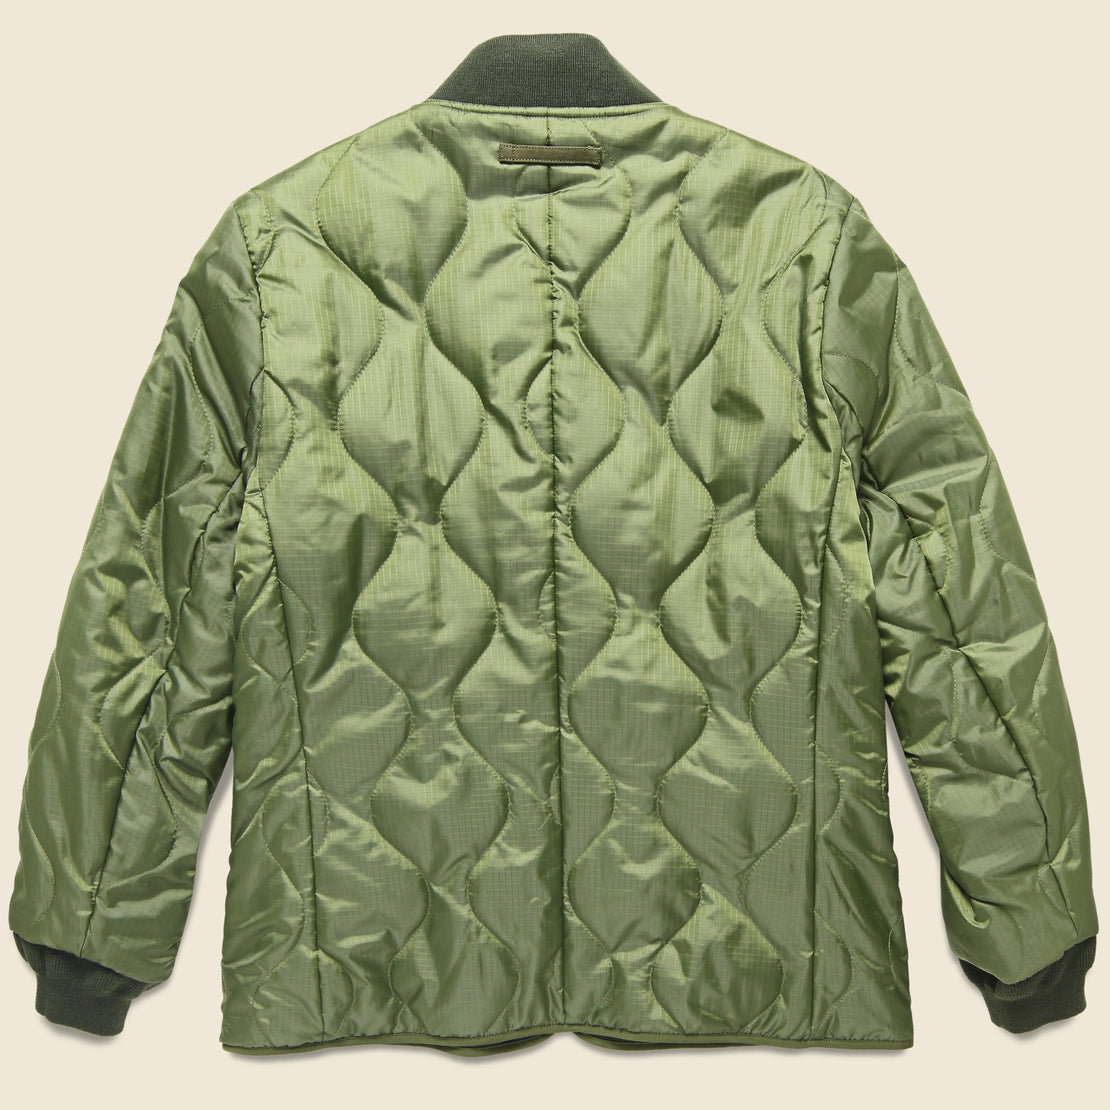 Flight Jacket Liner - Olive